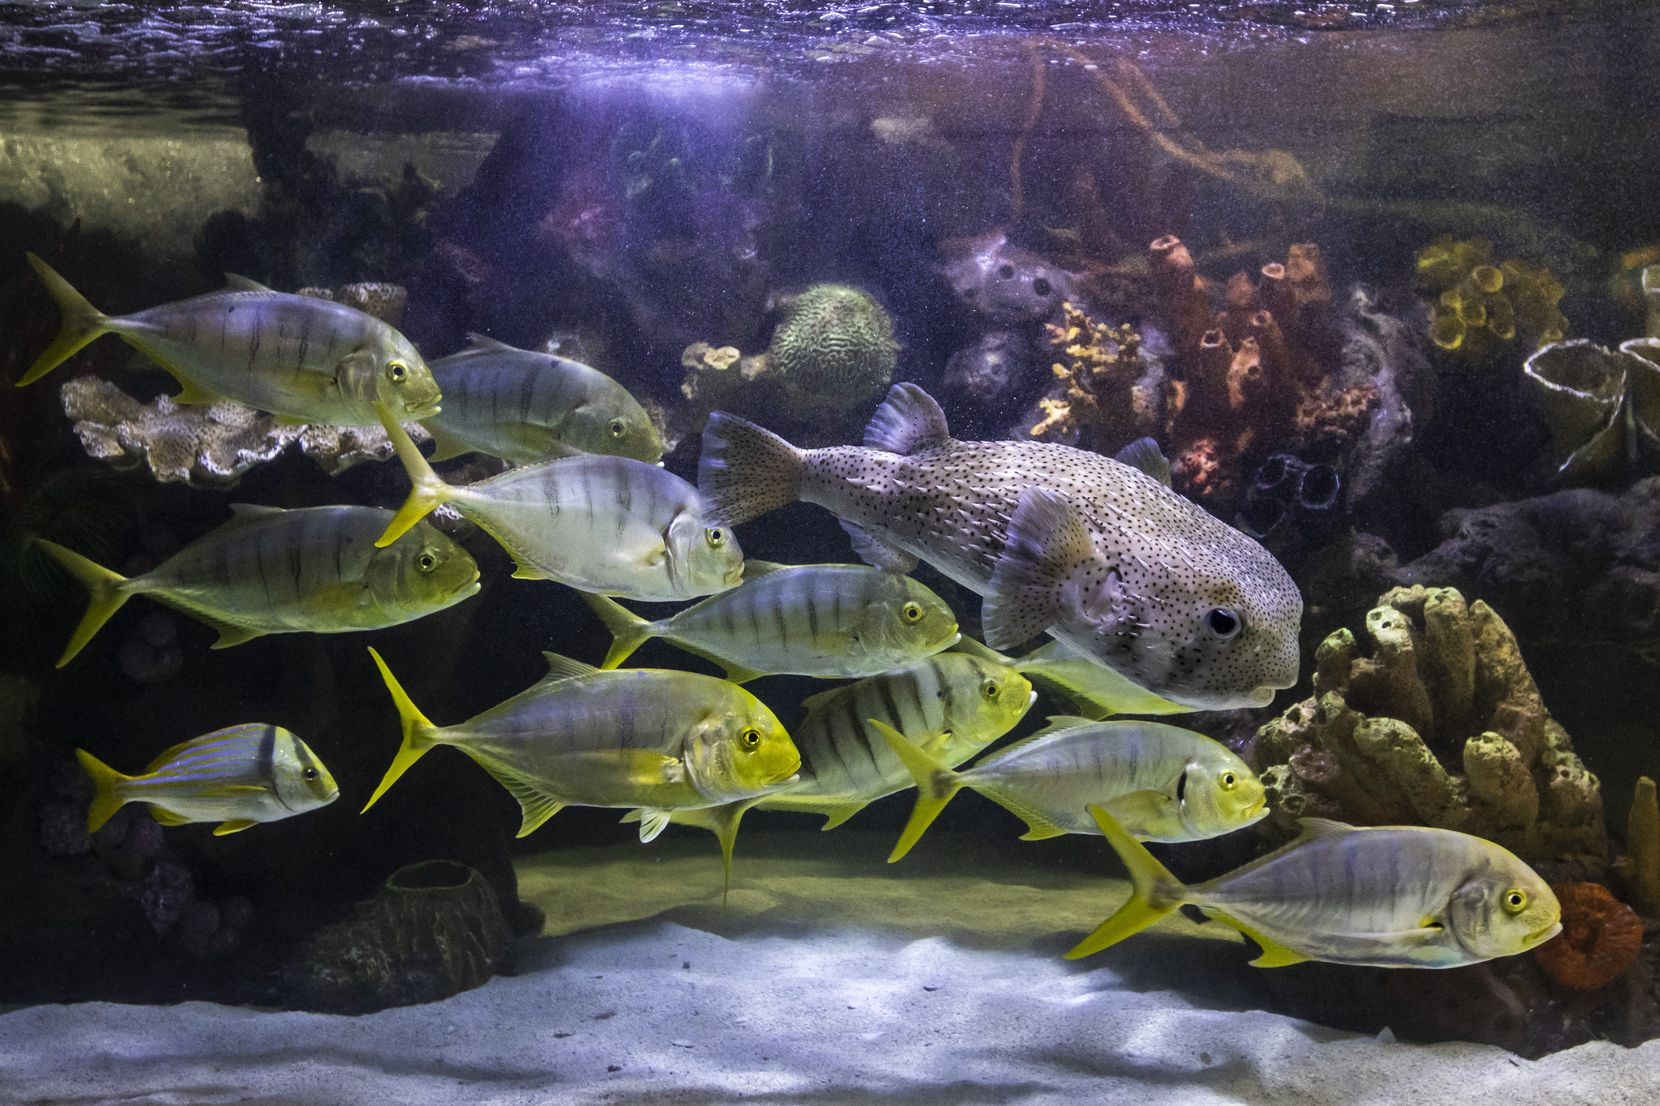 A variety of fish swim together in the coastal sharks exhibit at the Children's Aquarium at Fair Park in Dallas on Wednesday. If zoOceanarium is awarded the contract to operate the aquarium, it plans to begin sending additional fish to Fair Park in early July.